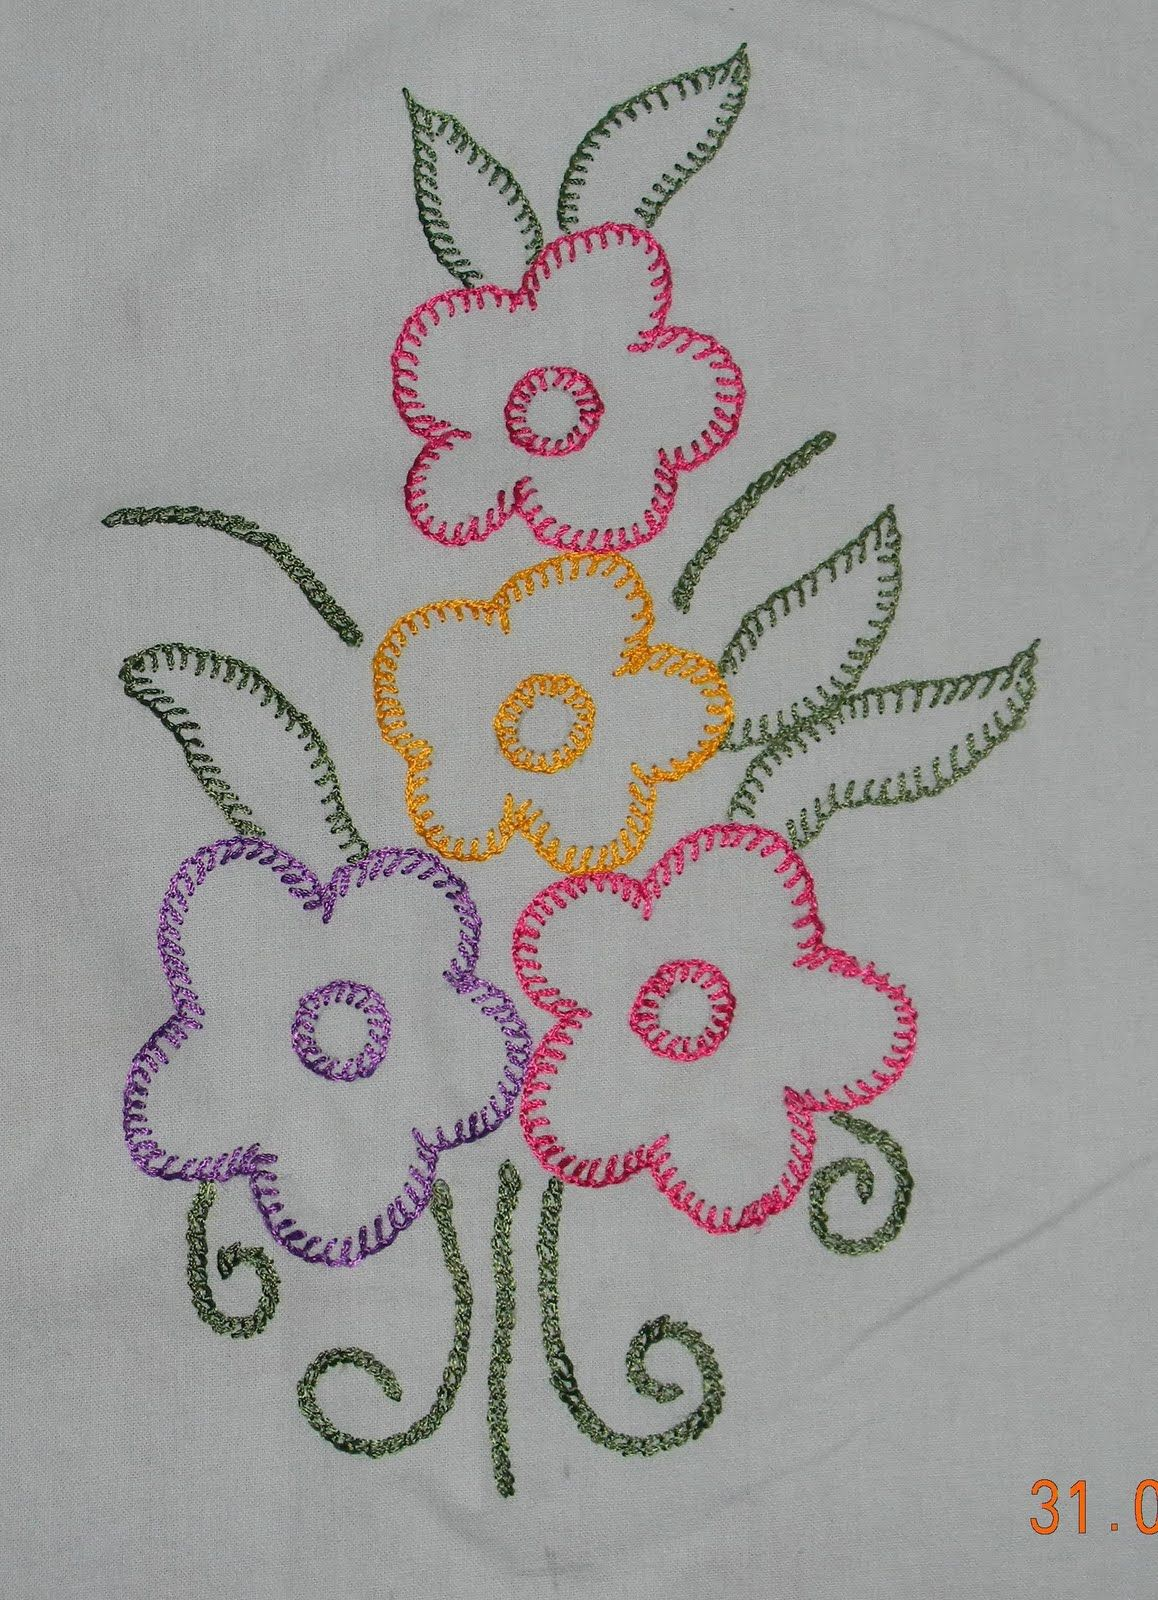 Hand Embroidery Stitches | ... Stitch Pattern Of Hand Embroidery And Open Chain Stitch As Well ...